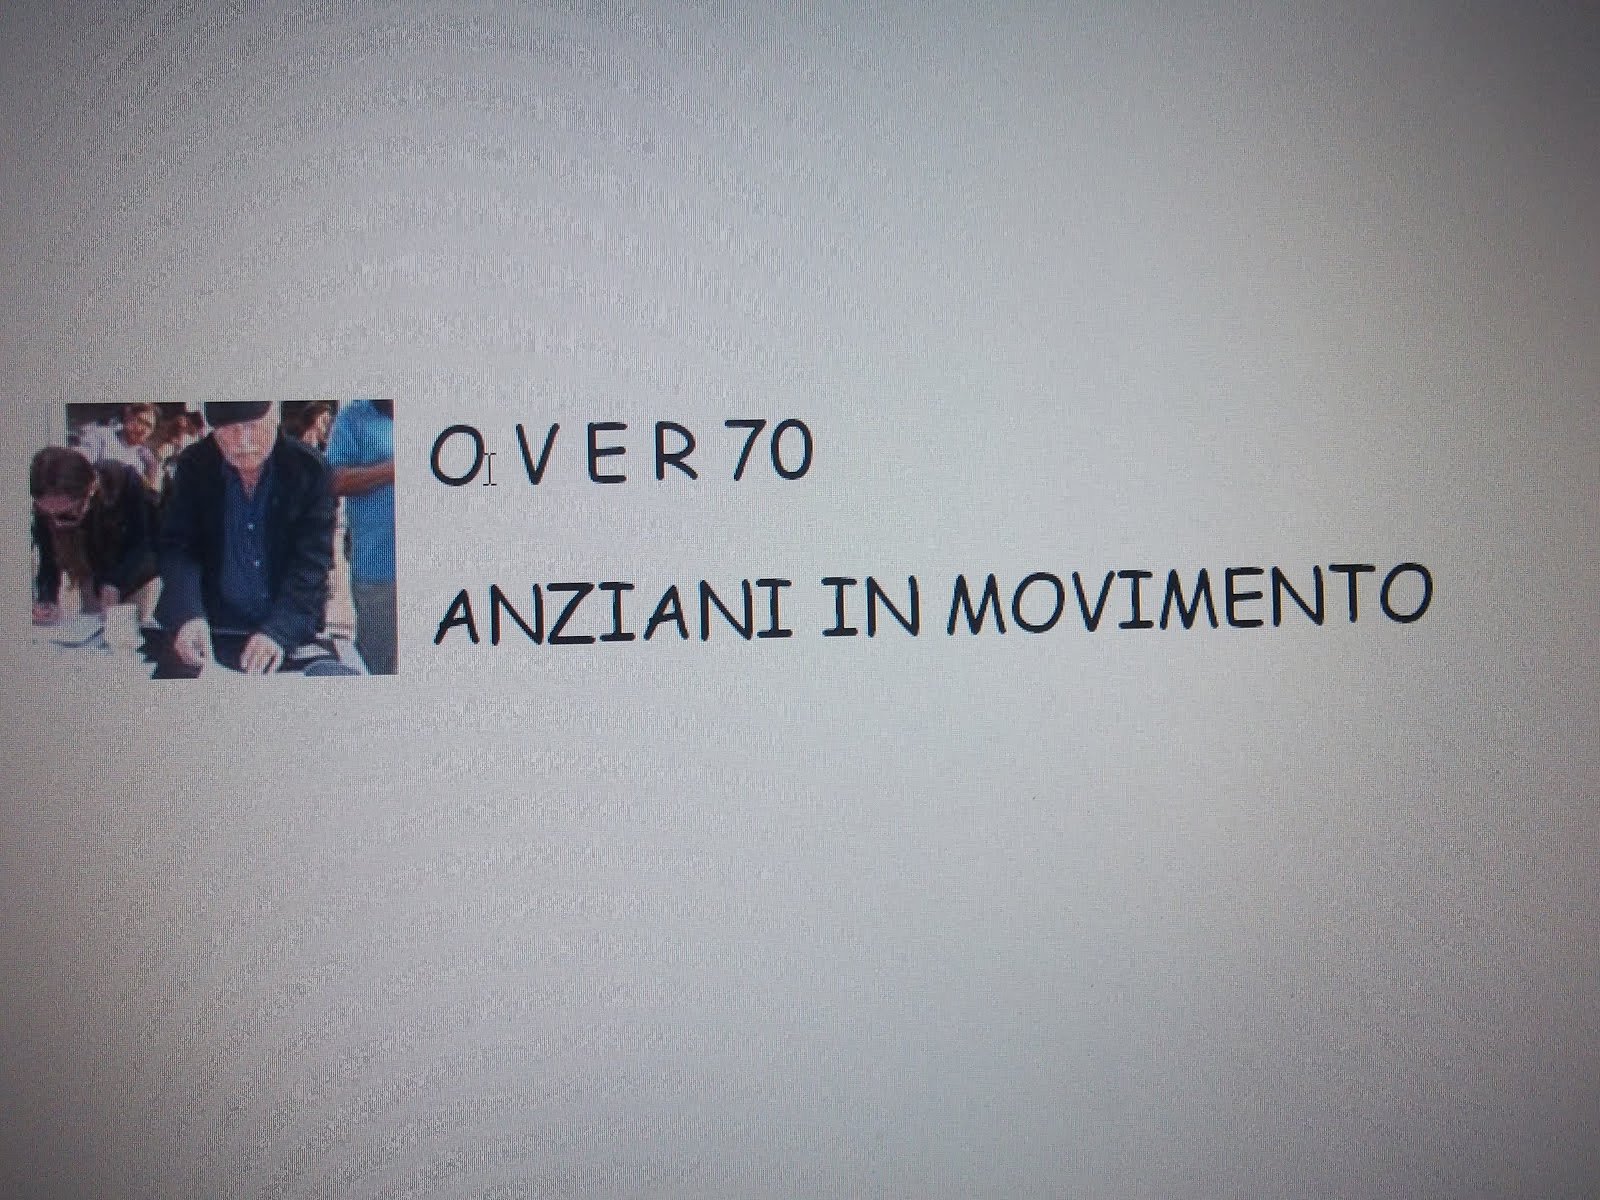 COMITATO OVER 70